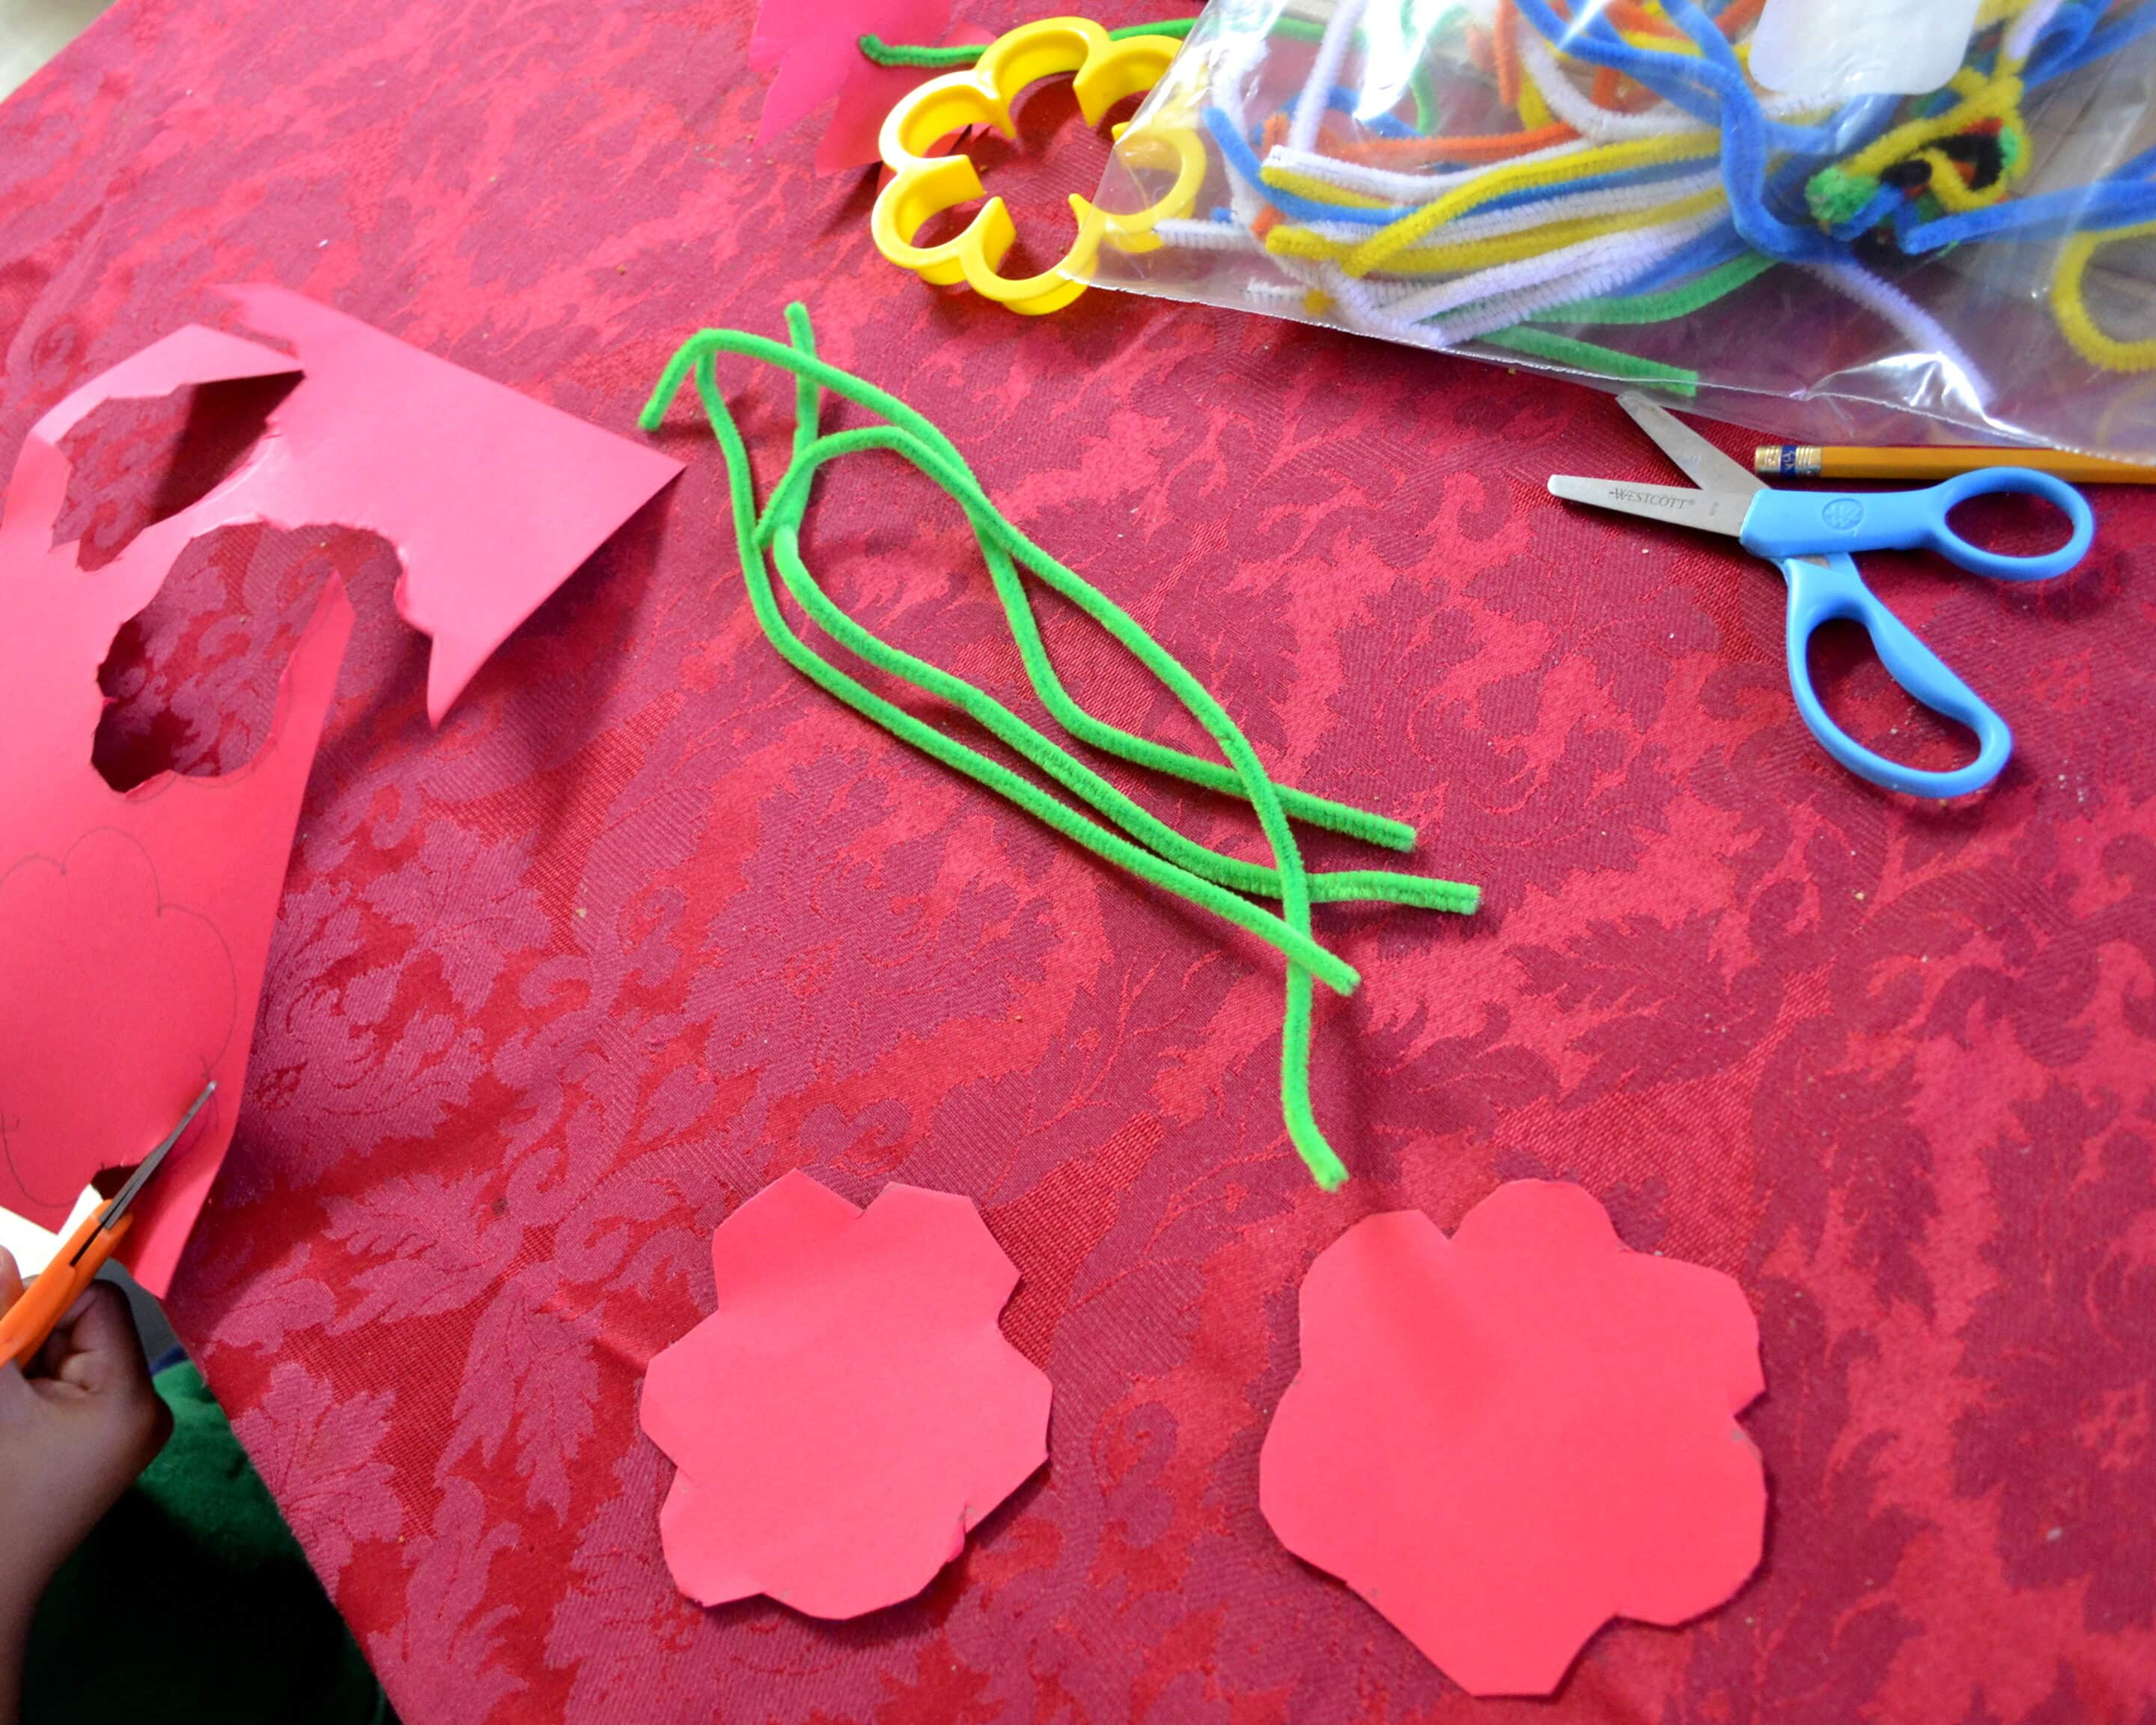 Easy DIY Pipe Cleaner Flower Craft for Kids - Mommy Snippets (2)